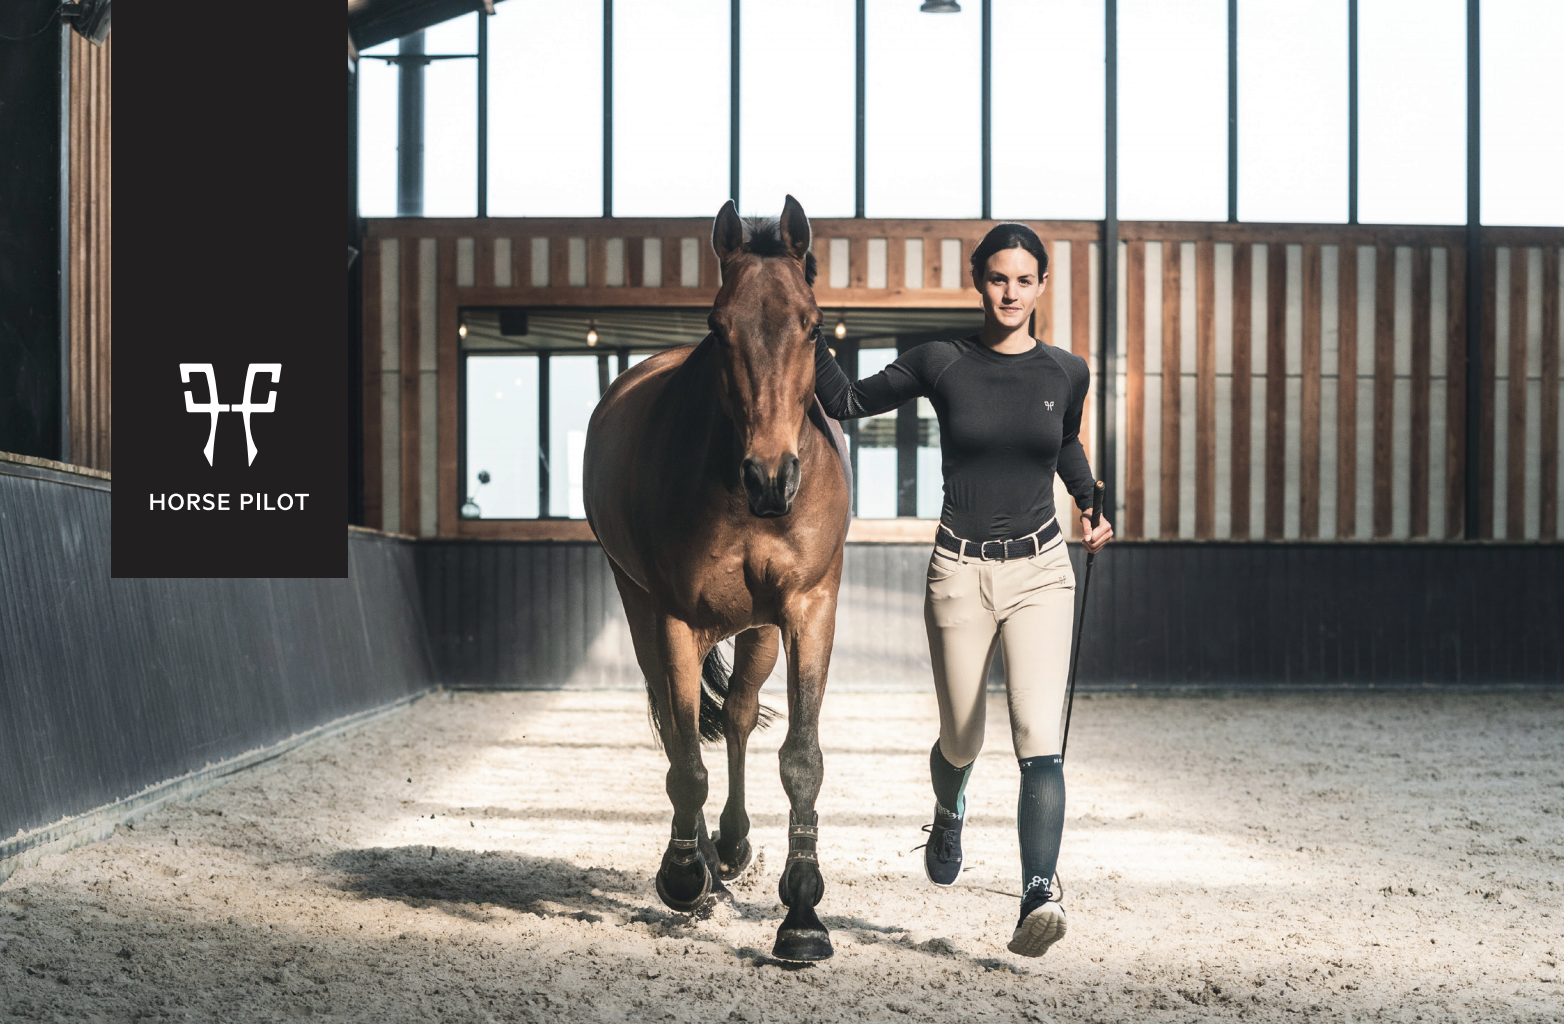 Horse Pilot lance film : Why do you ride?